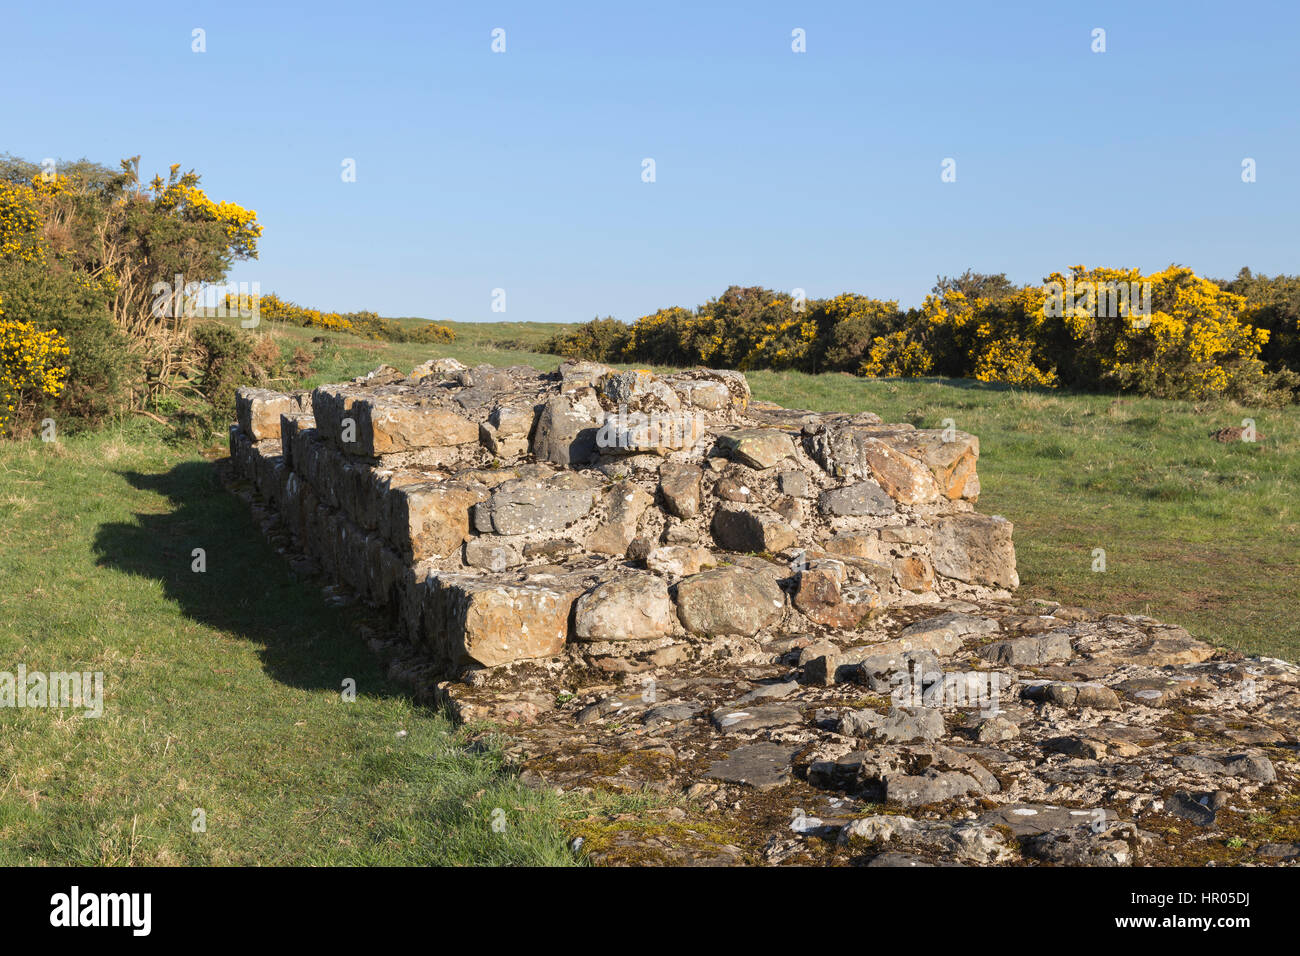 Hadrian's Wall: a stretch of Roman Wall near Black Carts, between Limestone Corner and Chesters Roman fort - Stock Image